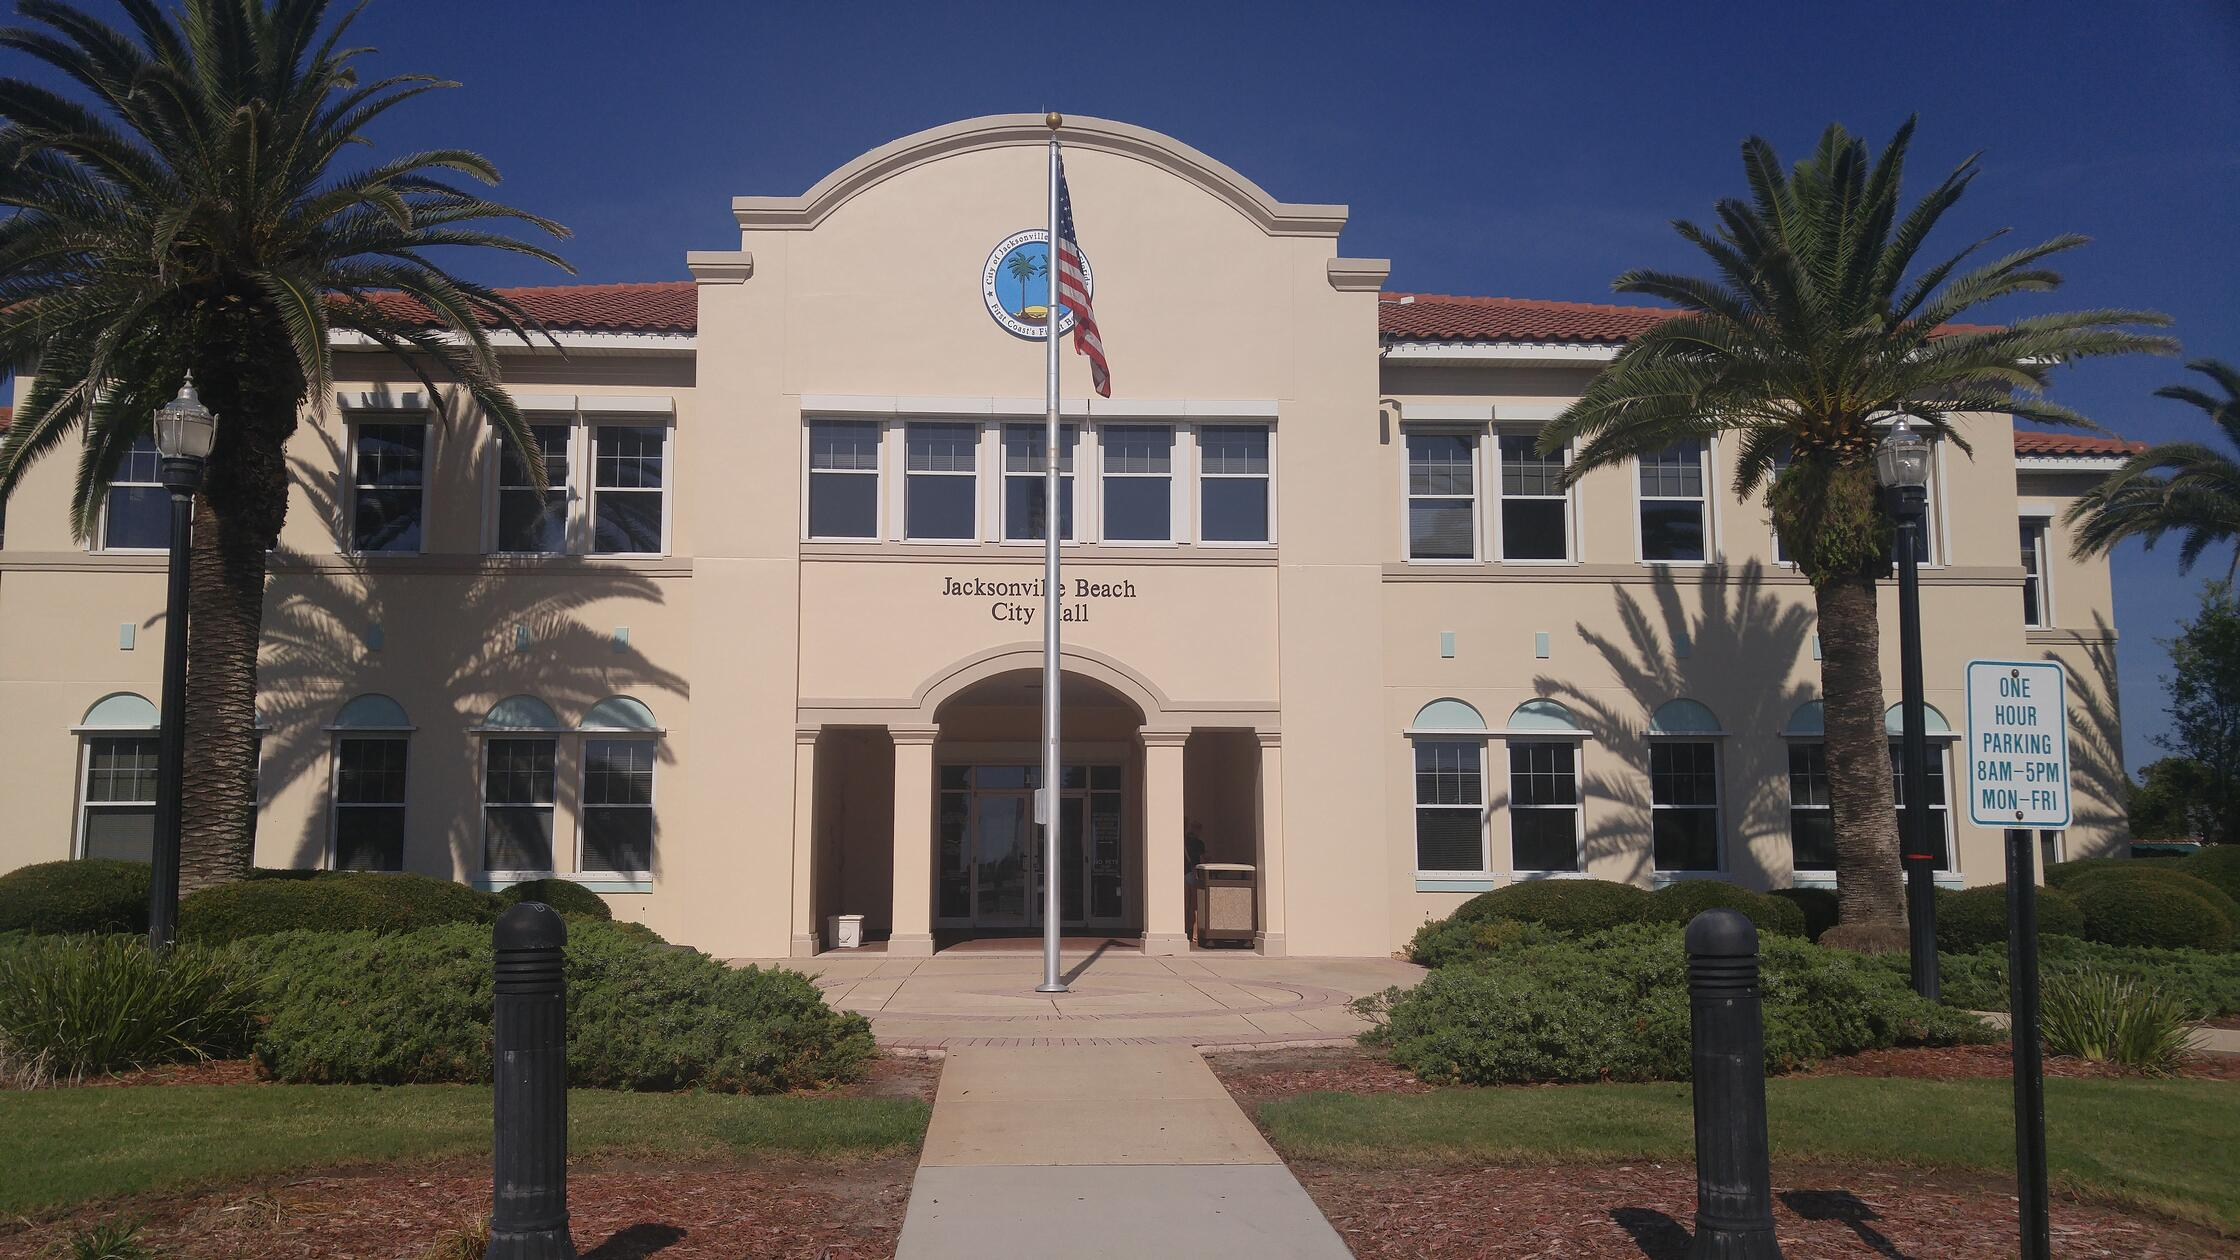 Jax Beach City Hall